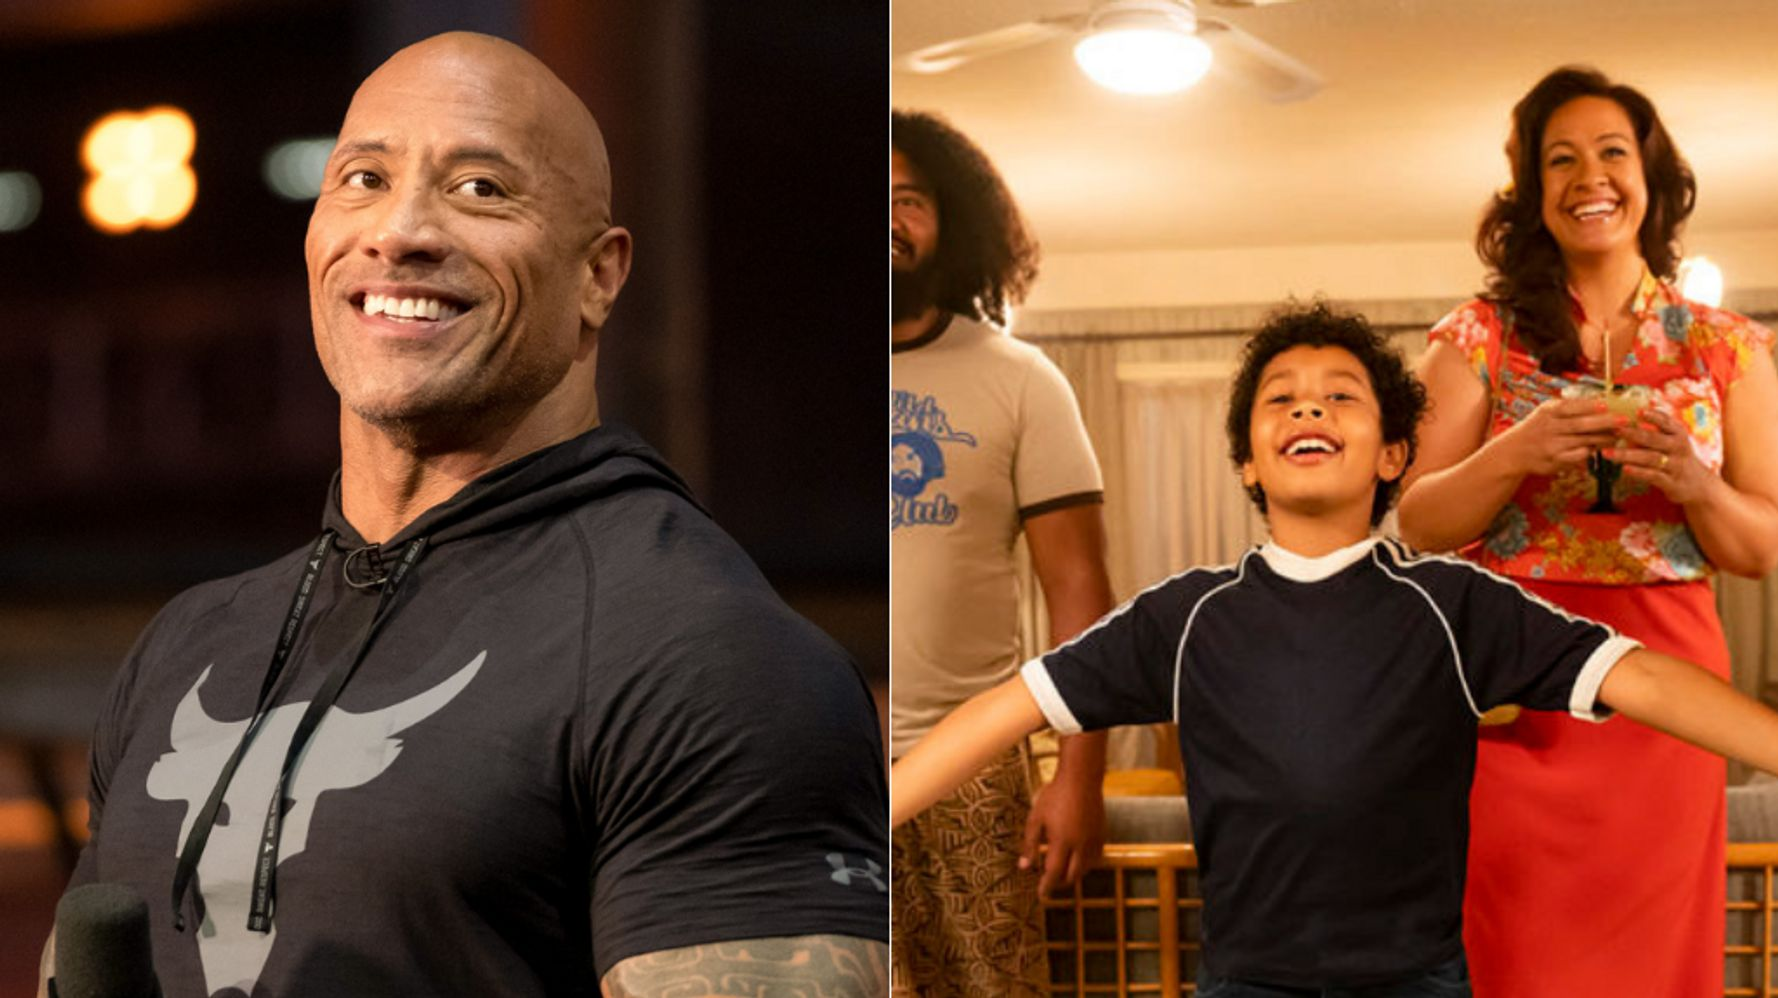 Watch Dwayne Johnson's Childhood In NBC's 'Young Rock' Trailer